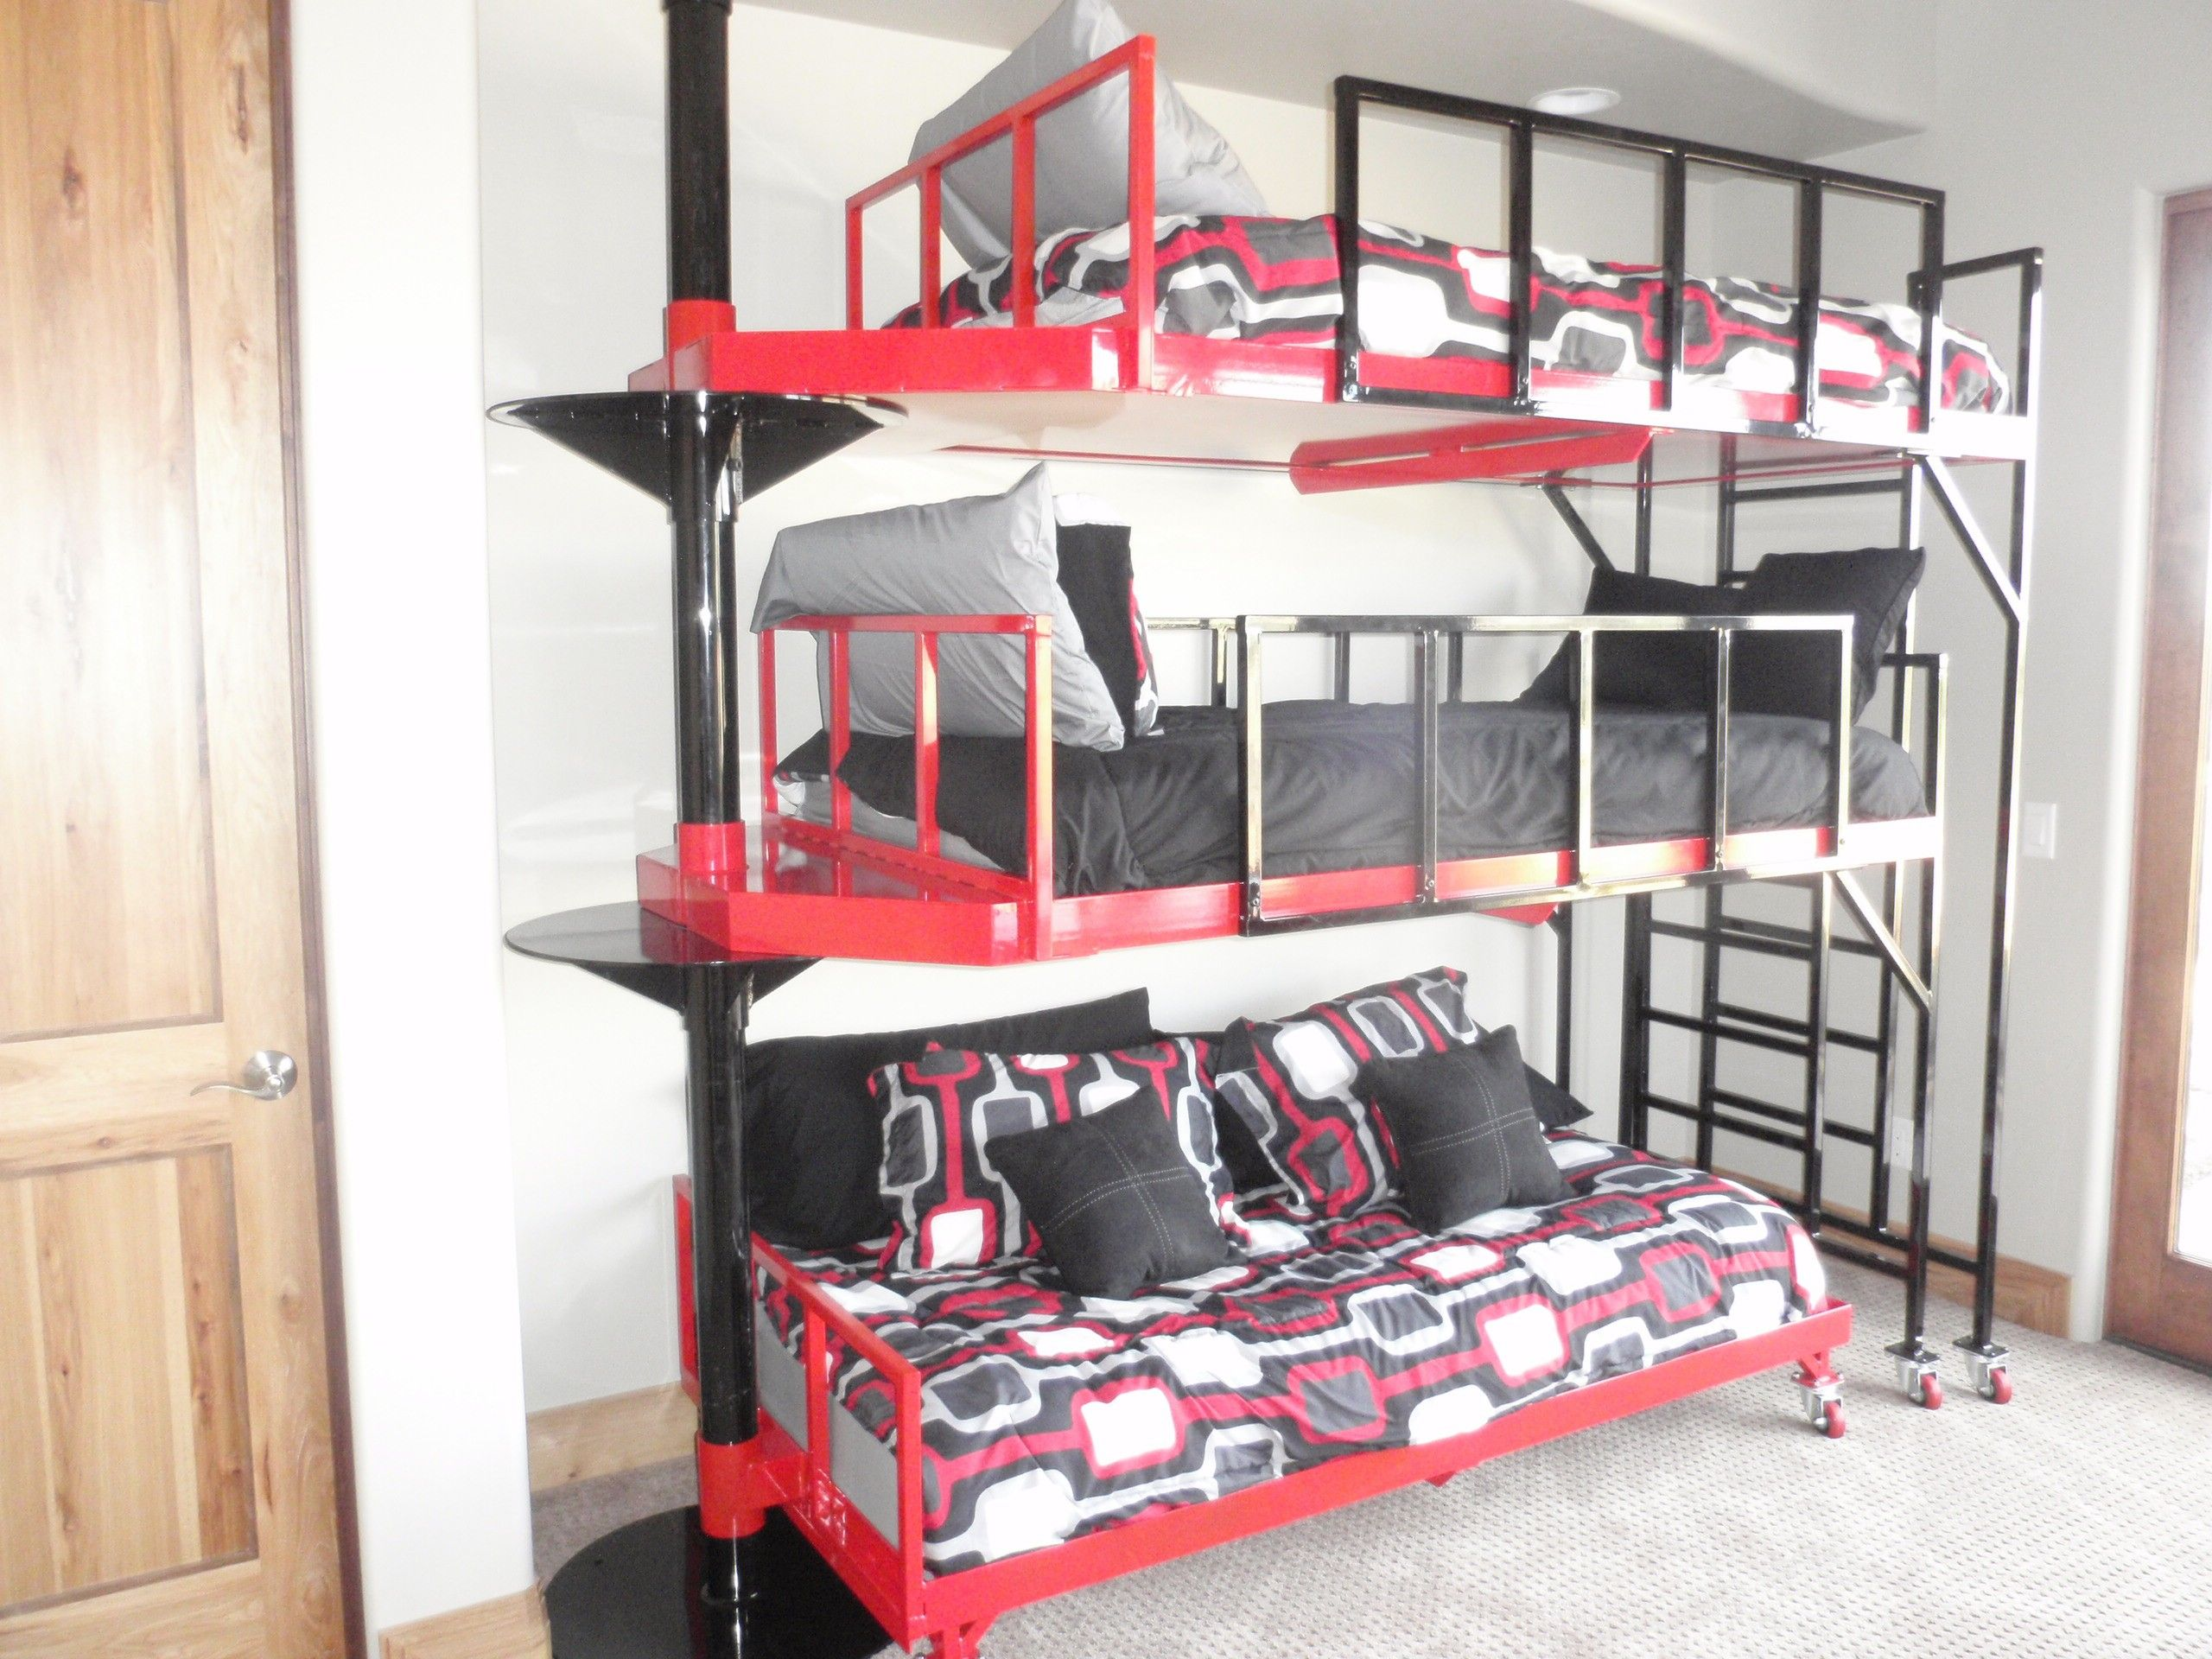 Contemporary 3 Tierd Pivoting Bunk Bed For The Home